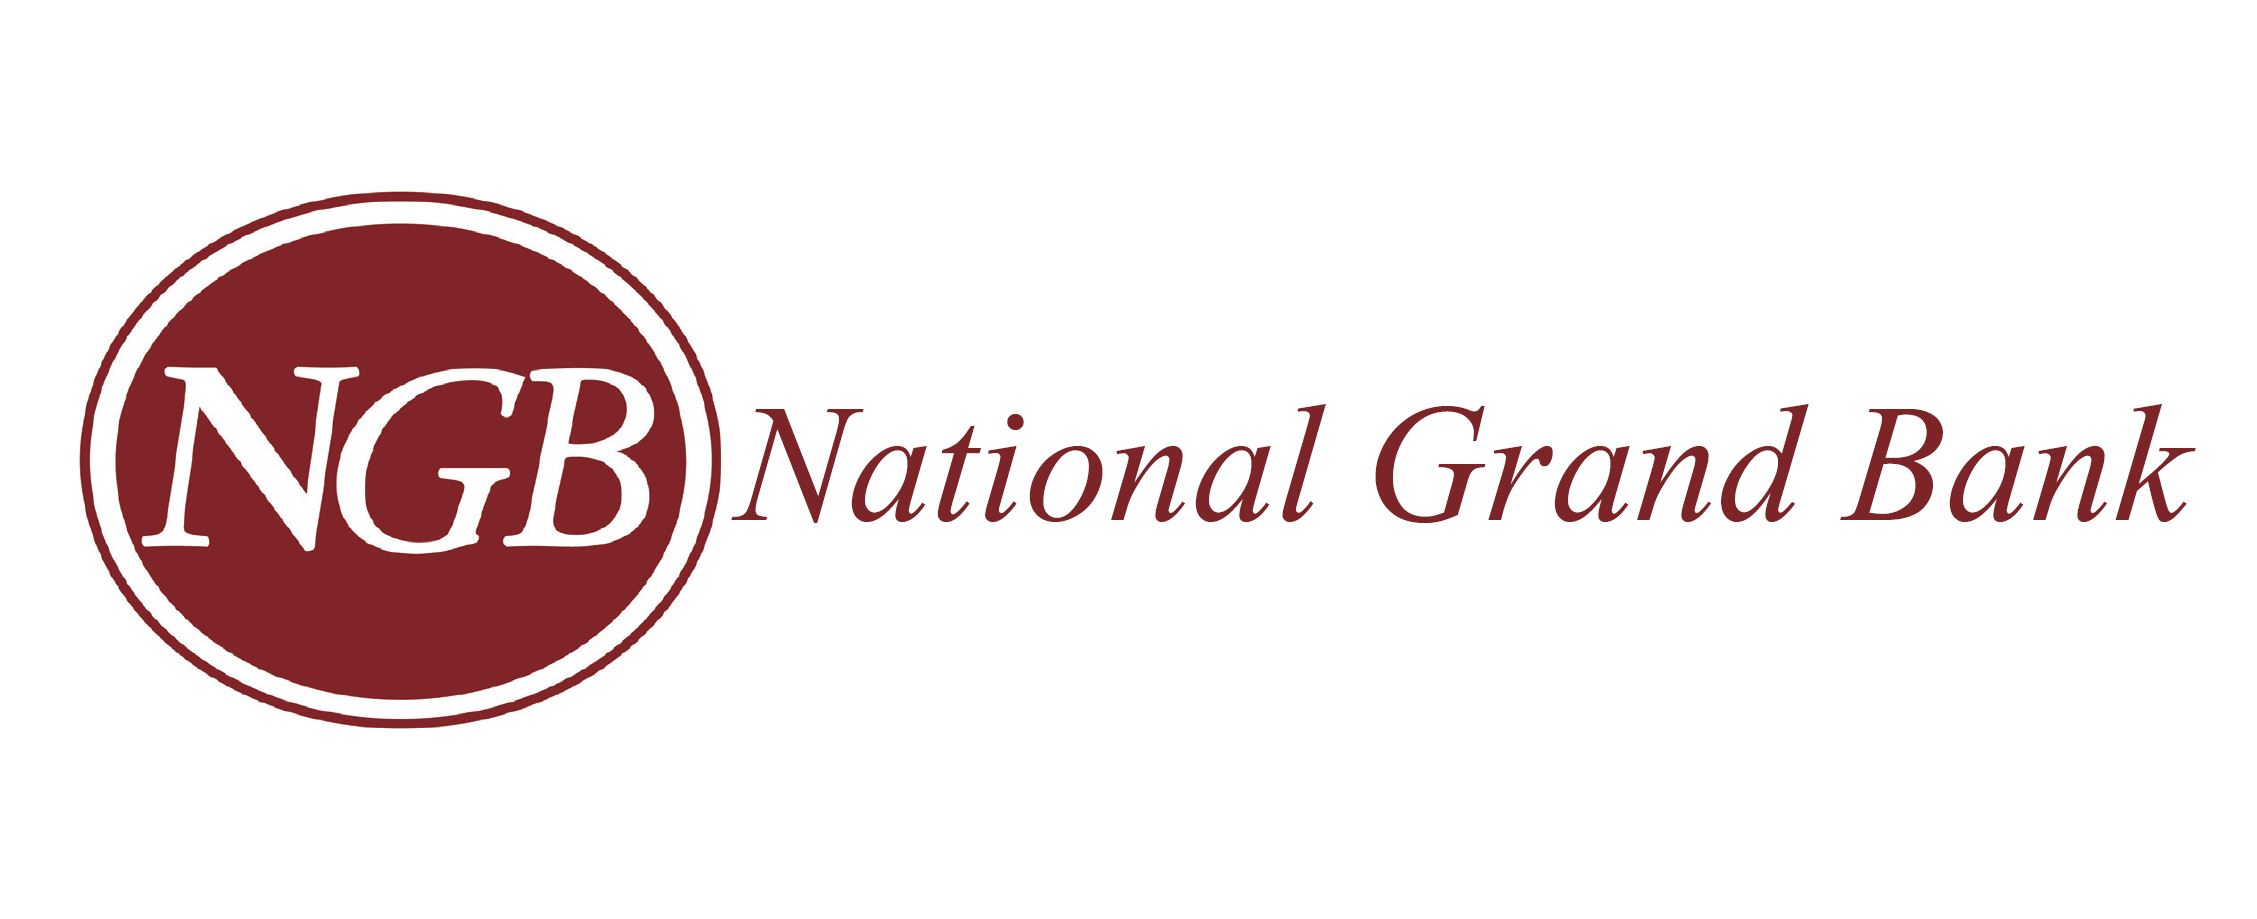 National Grand Bank Logo